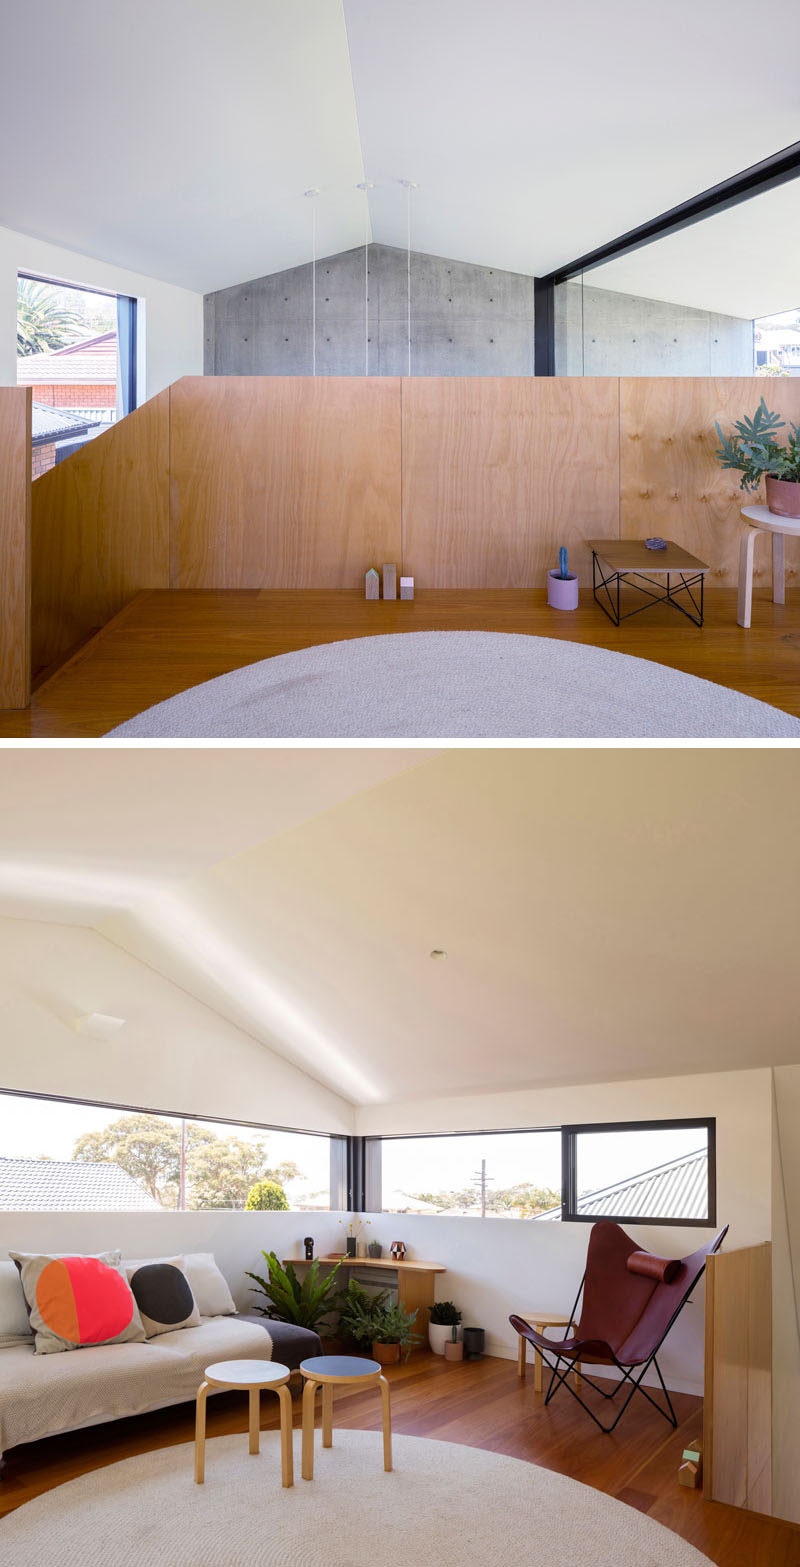 This modern house features a lofted living area that overlooks the main living room below. #LivingRoom #Loft